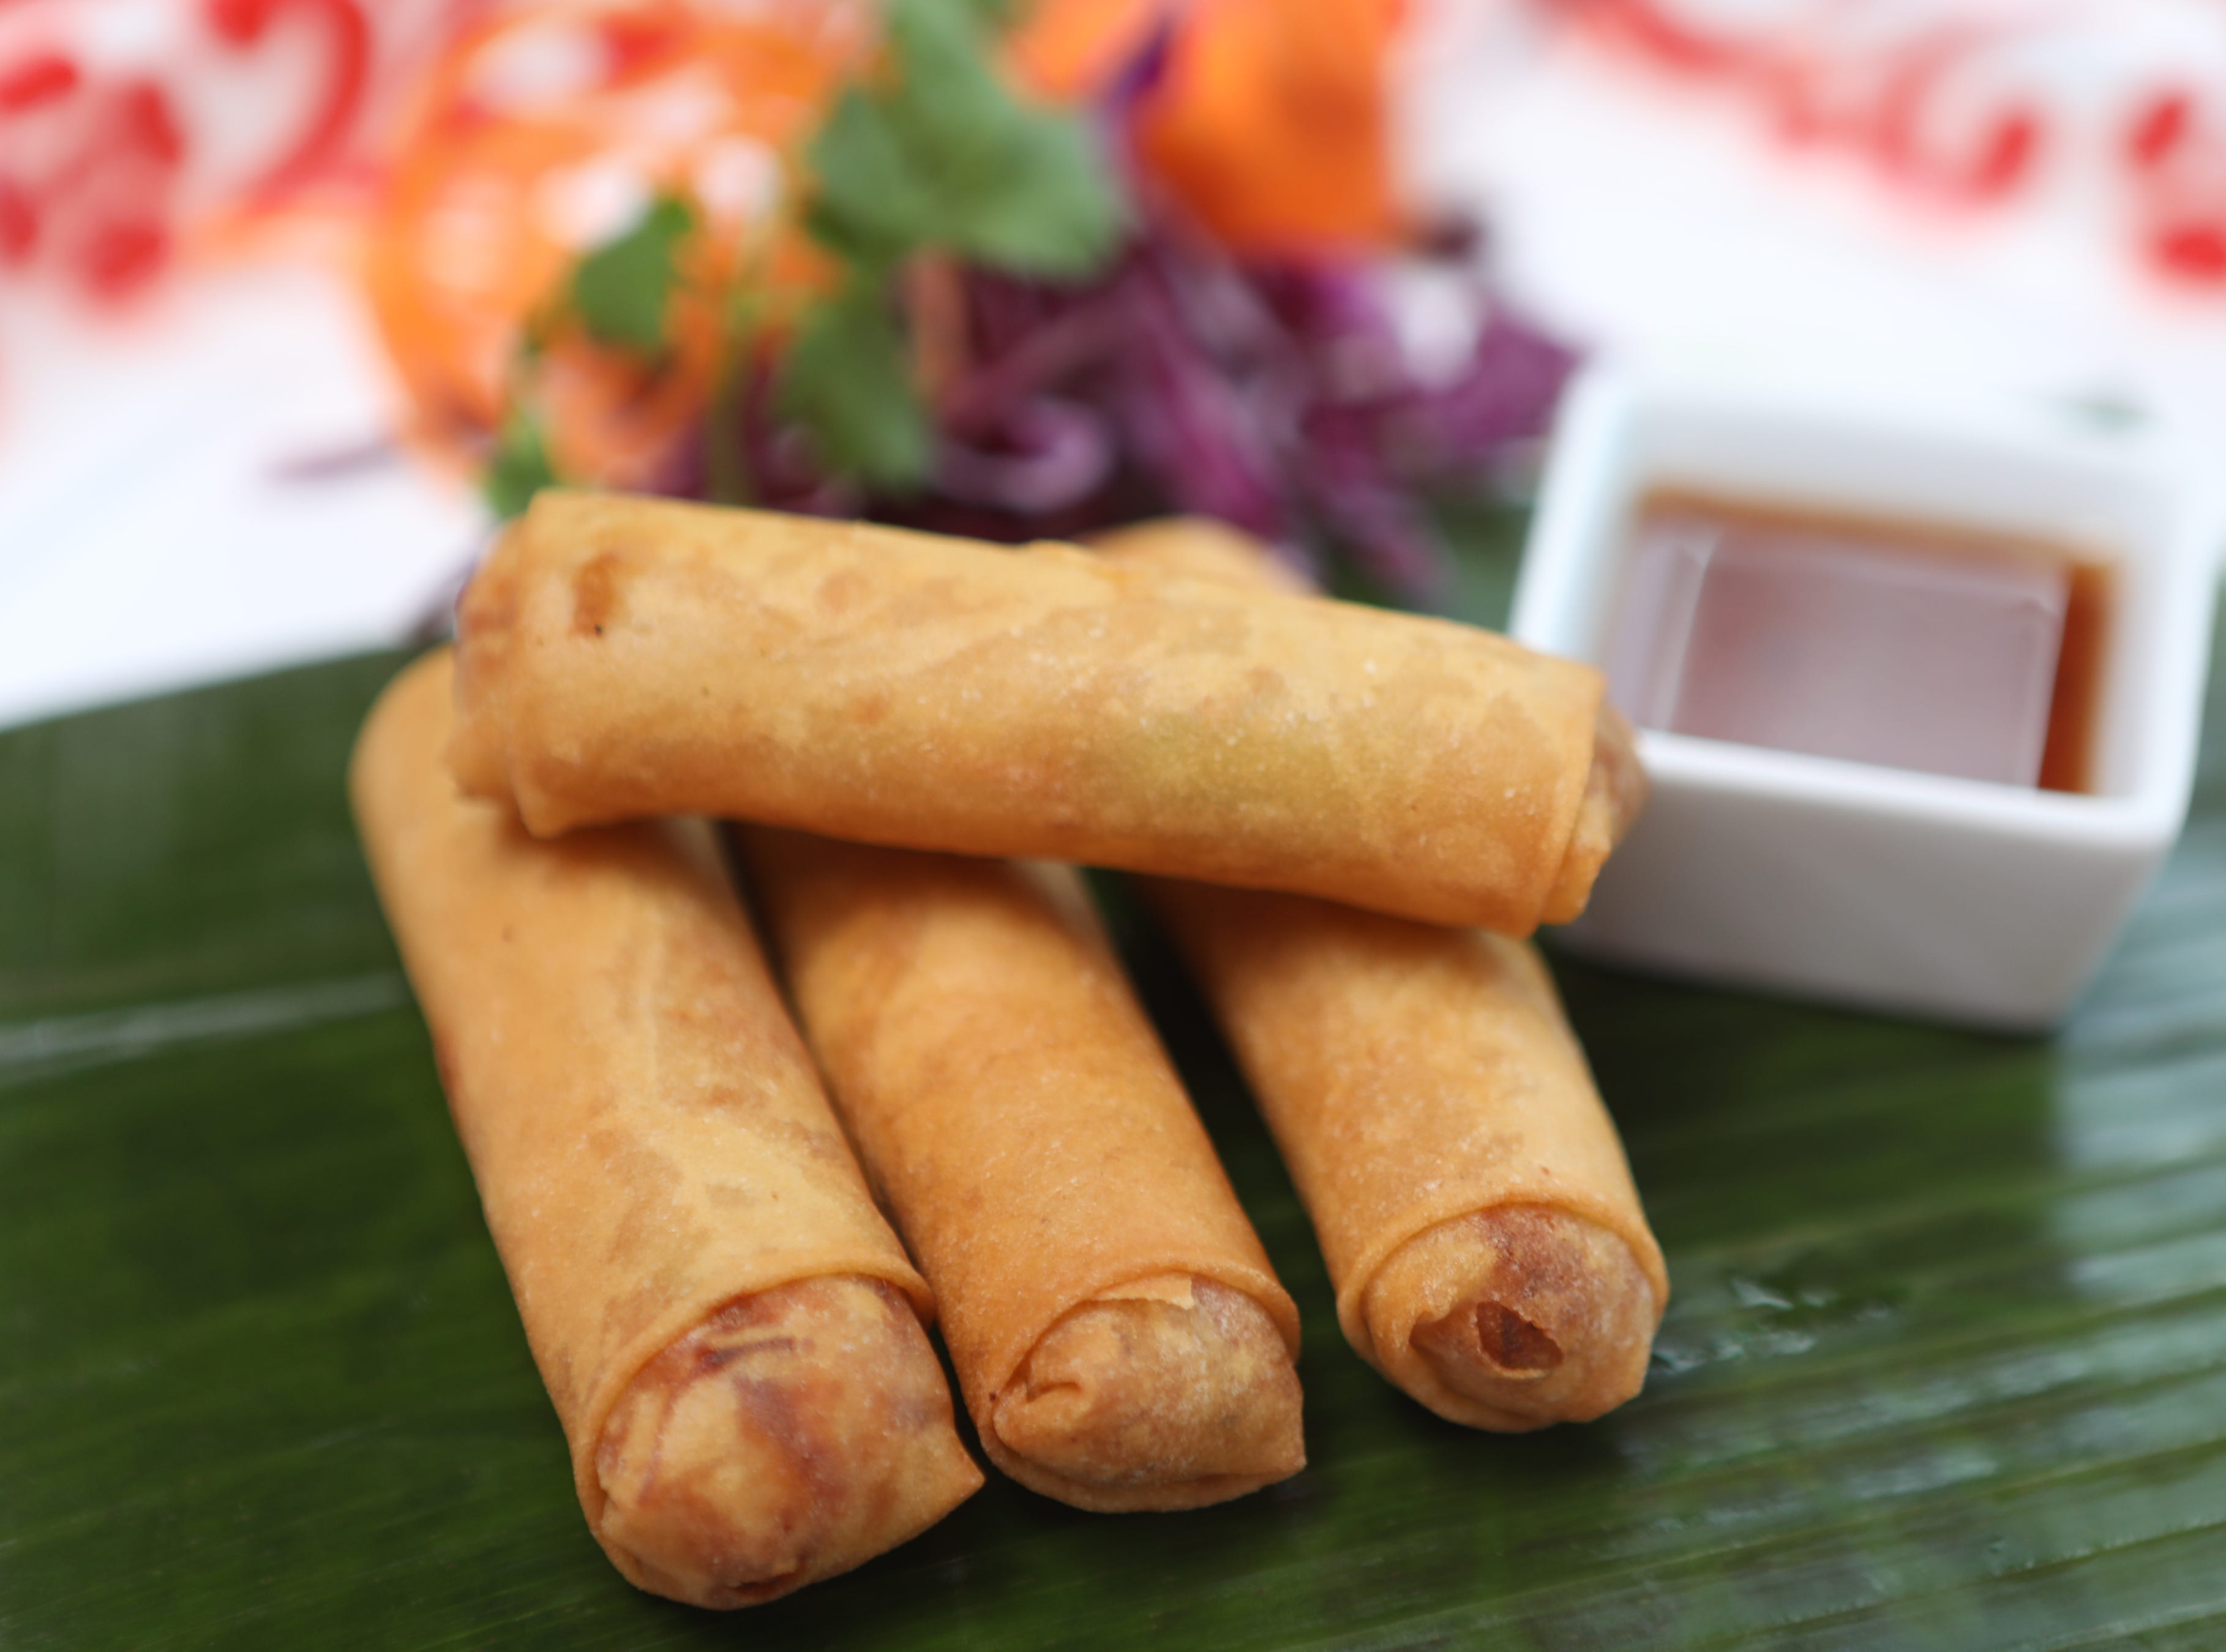 Spring rolls are shown at Kai Yang in Montclair. Wednesday, January 16, 2019